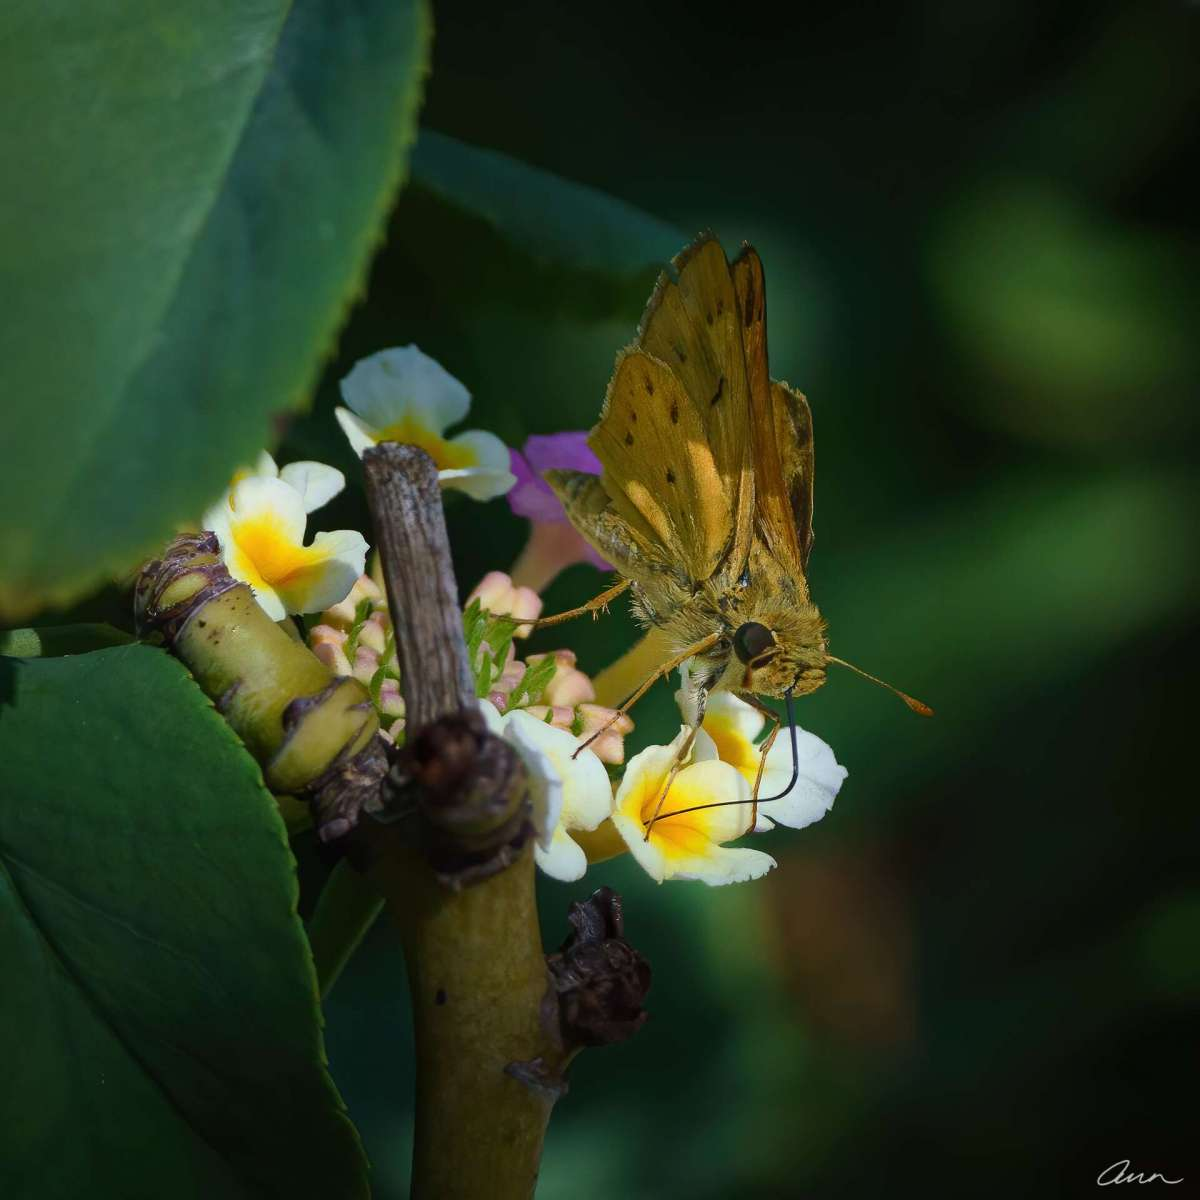 A close up of the Fiery Skipper's proboscis inserted into a flower.